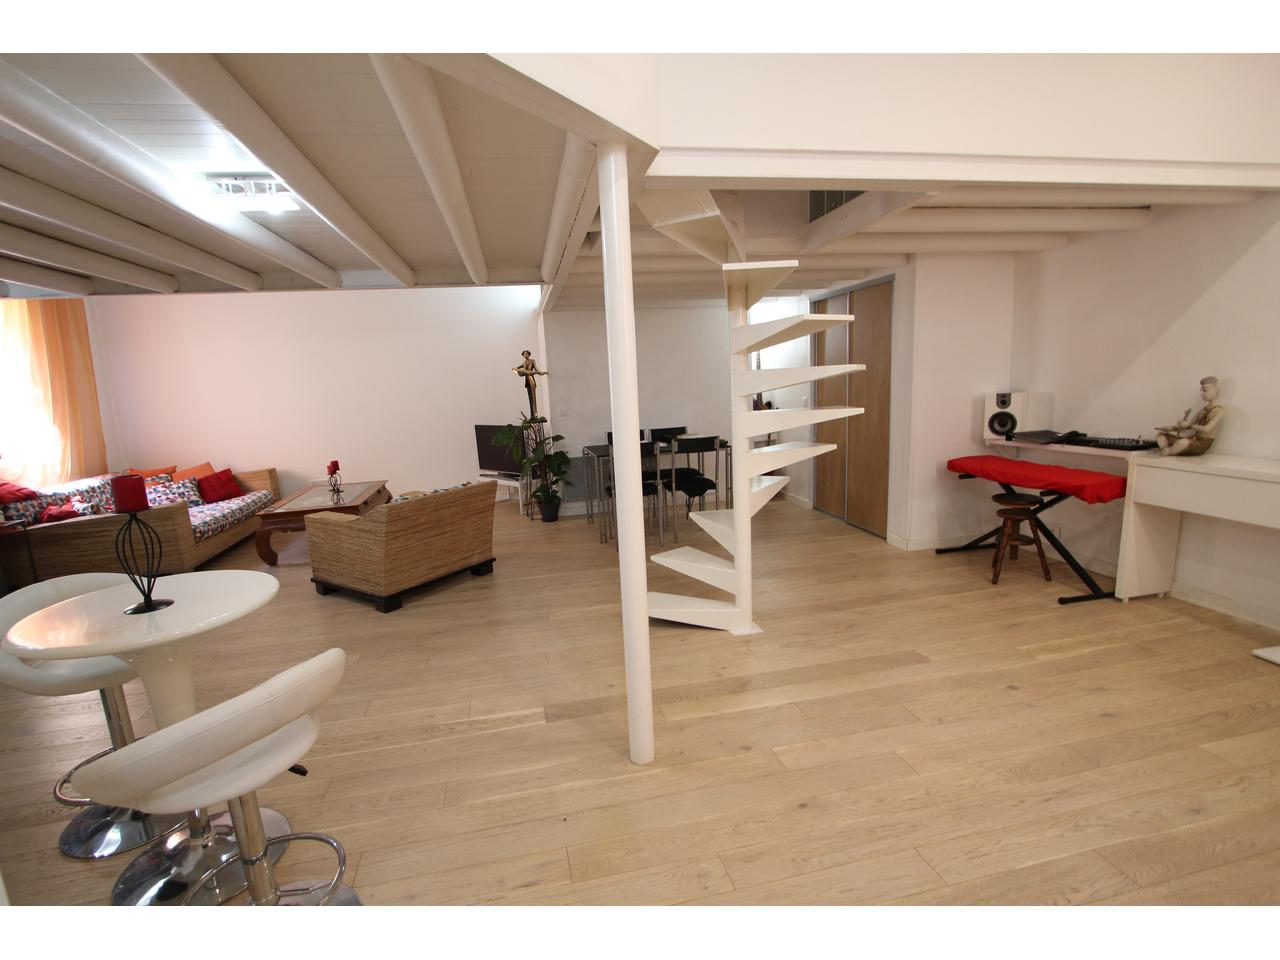 loft vieille ville ANTIBES EXCLUSIVITE 298 000 008.JPG